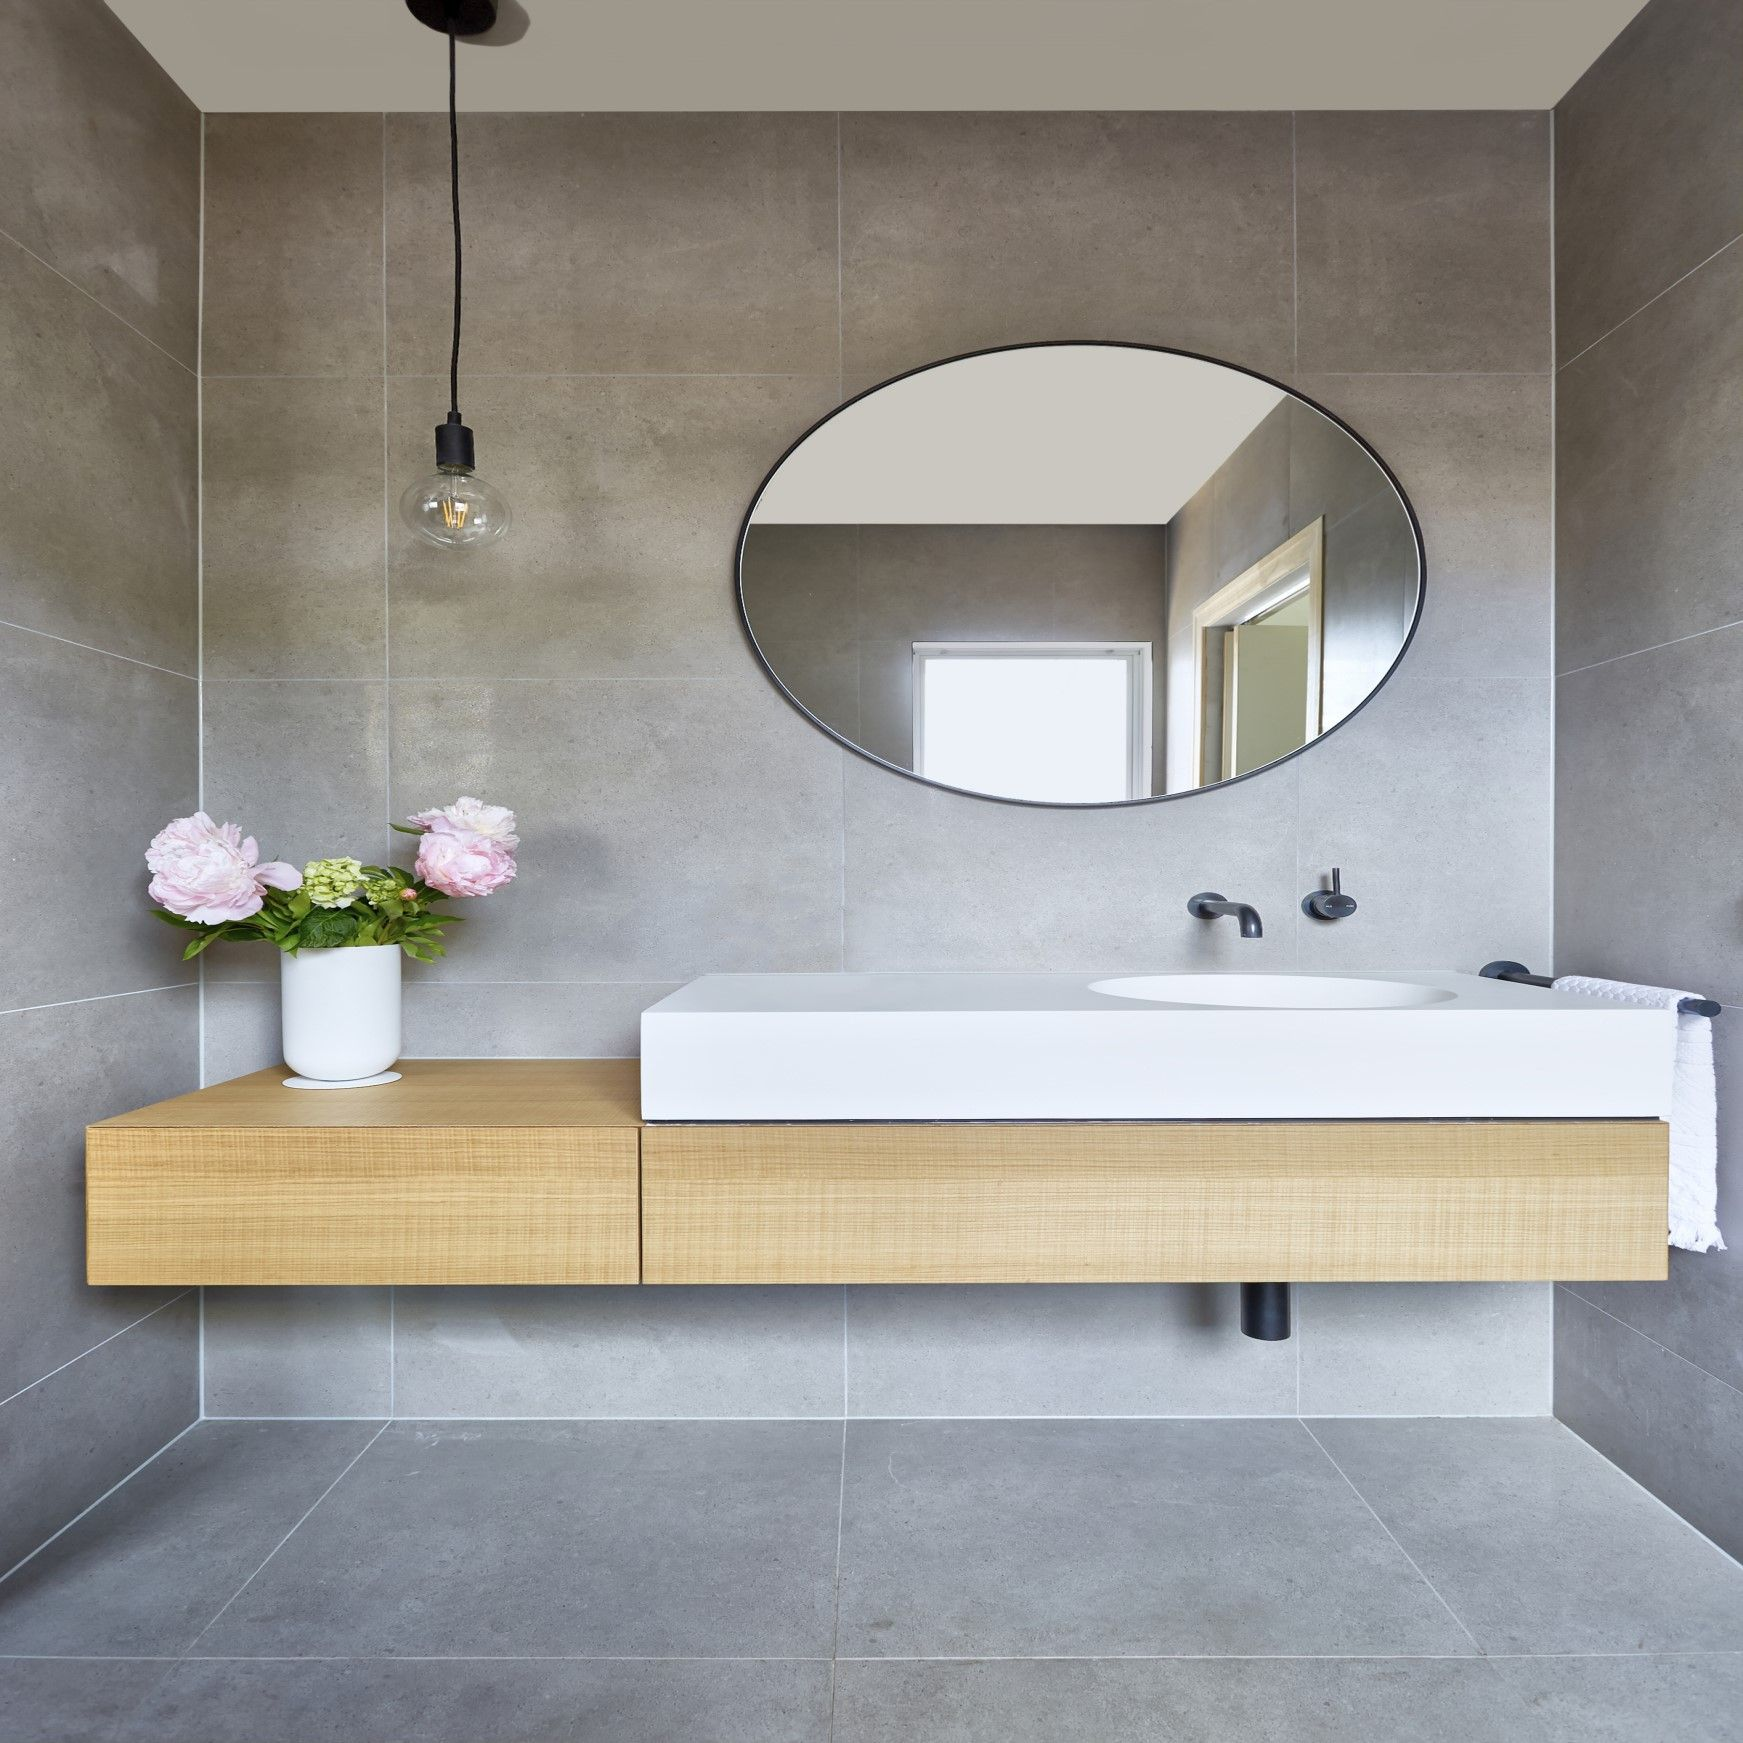 bathroom renovations melbourne i 2020 badrum on bathroom renovation ideas melbourne id=14576